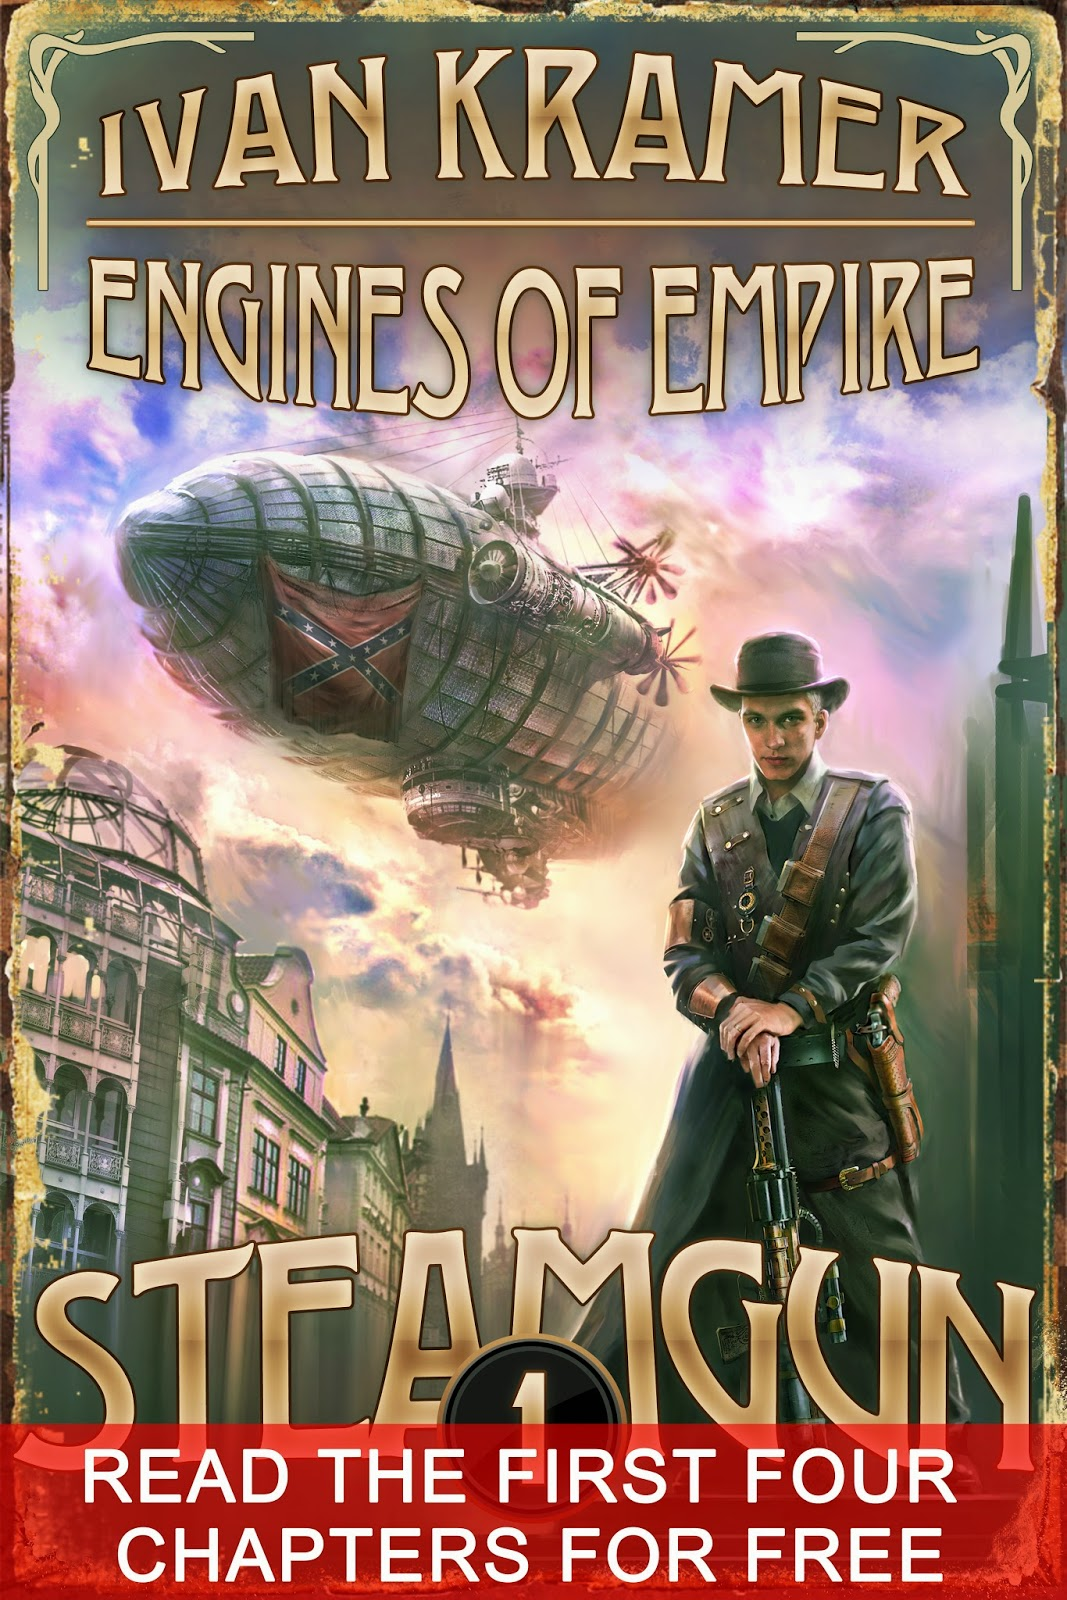 http://www.kobobooks.com/ebook/Free-Preview-STEAMGUN-Engines-Empire/book-0rHI3g36qkCJK9gQELAxDQ/page1.html